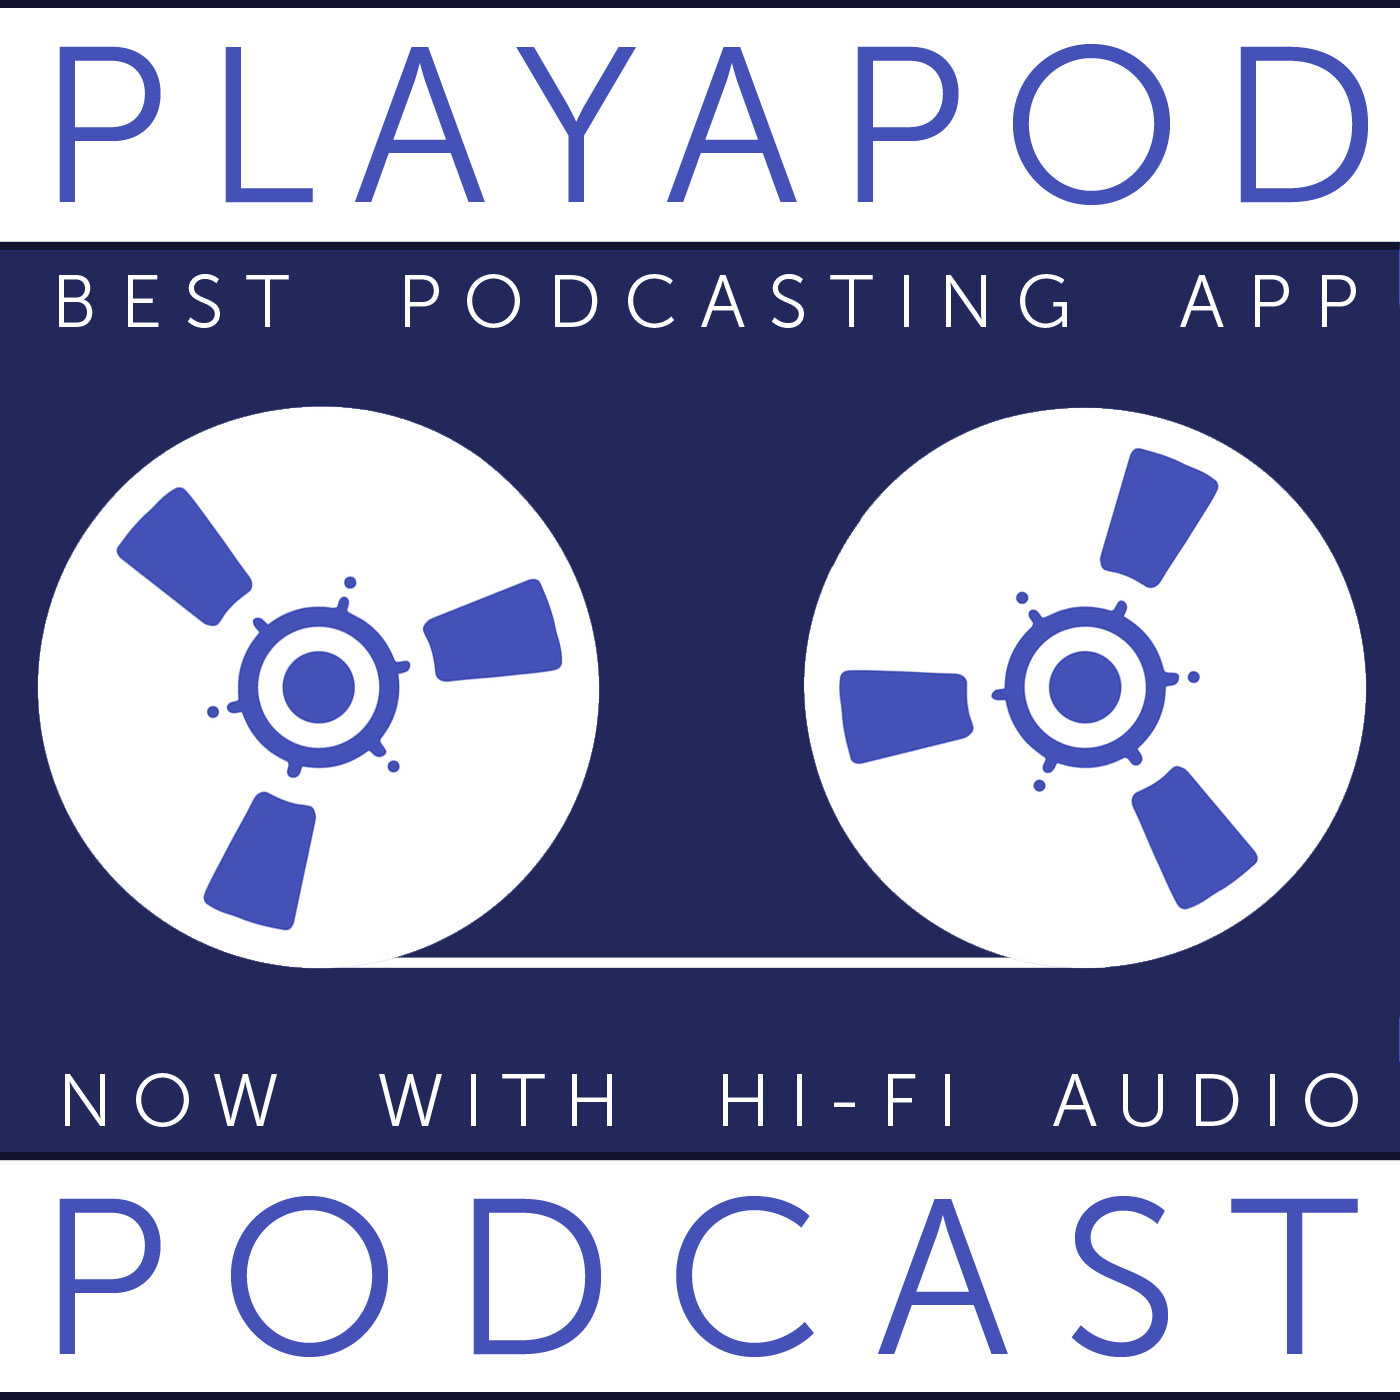 Featured Podcasts - Playapod